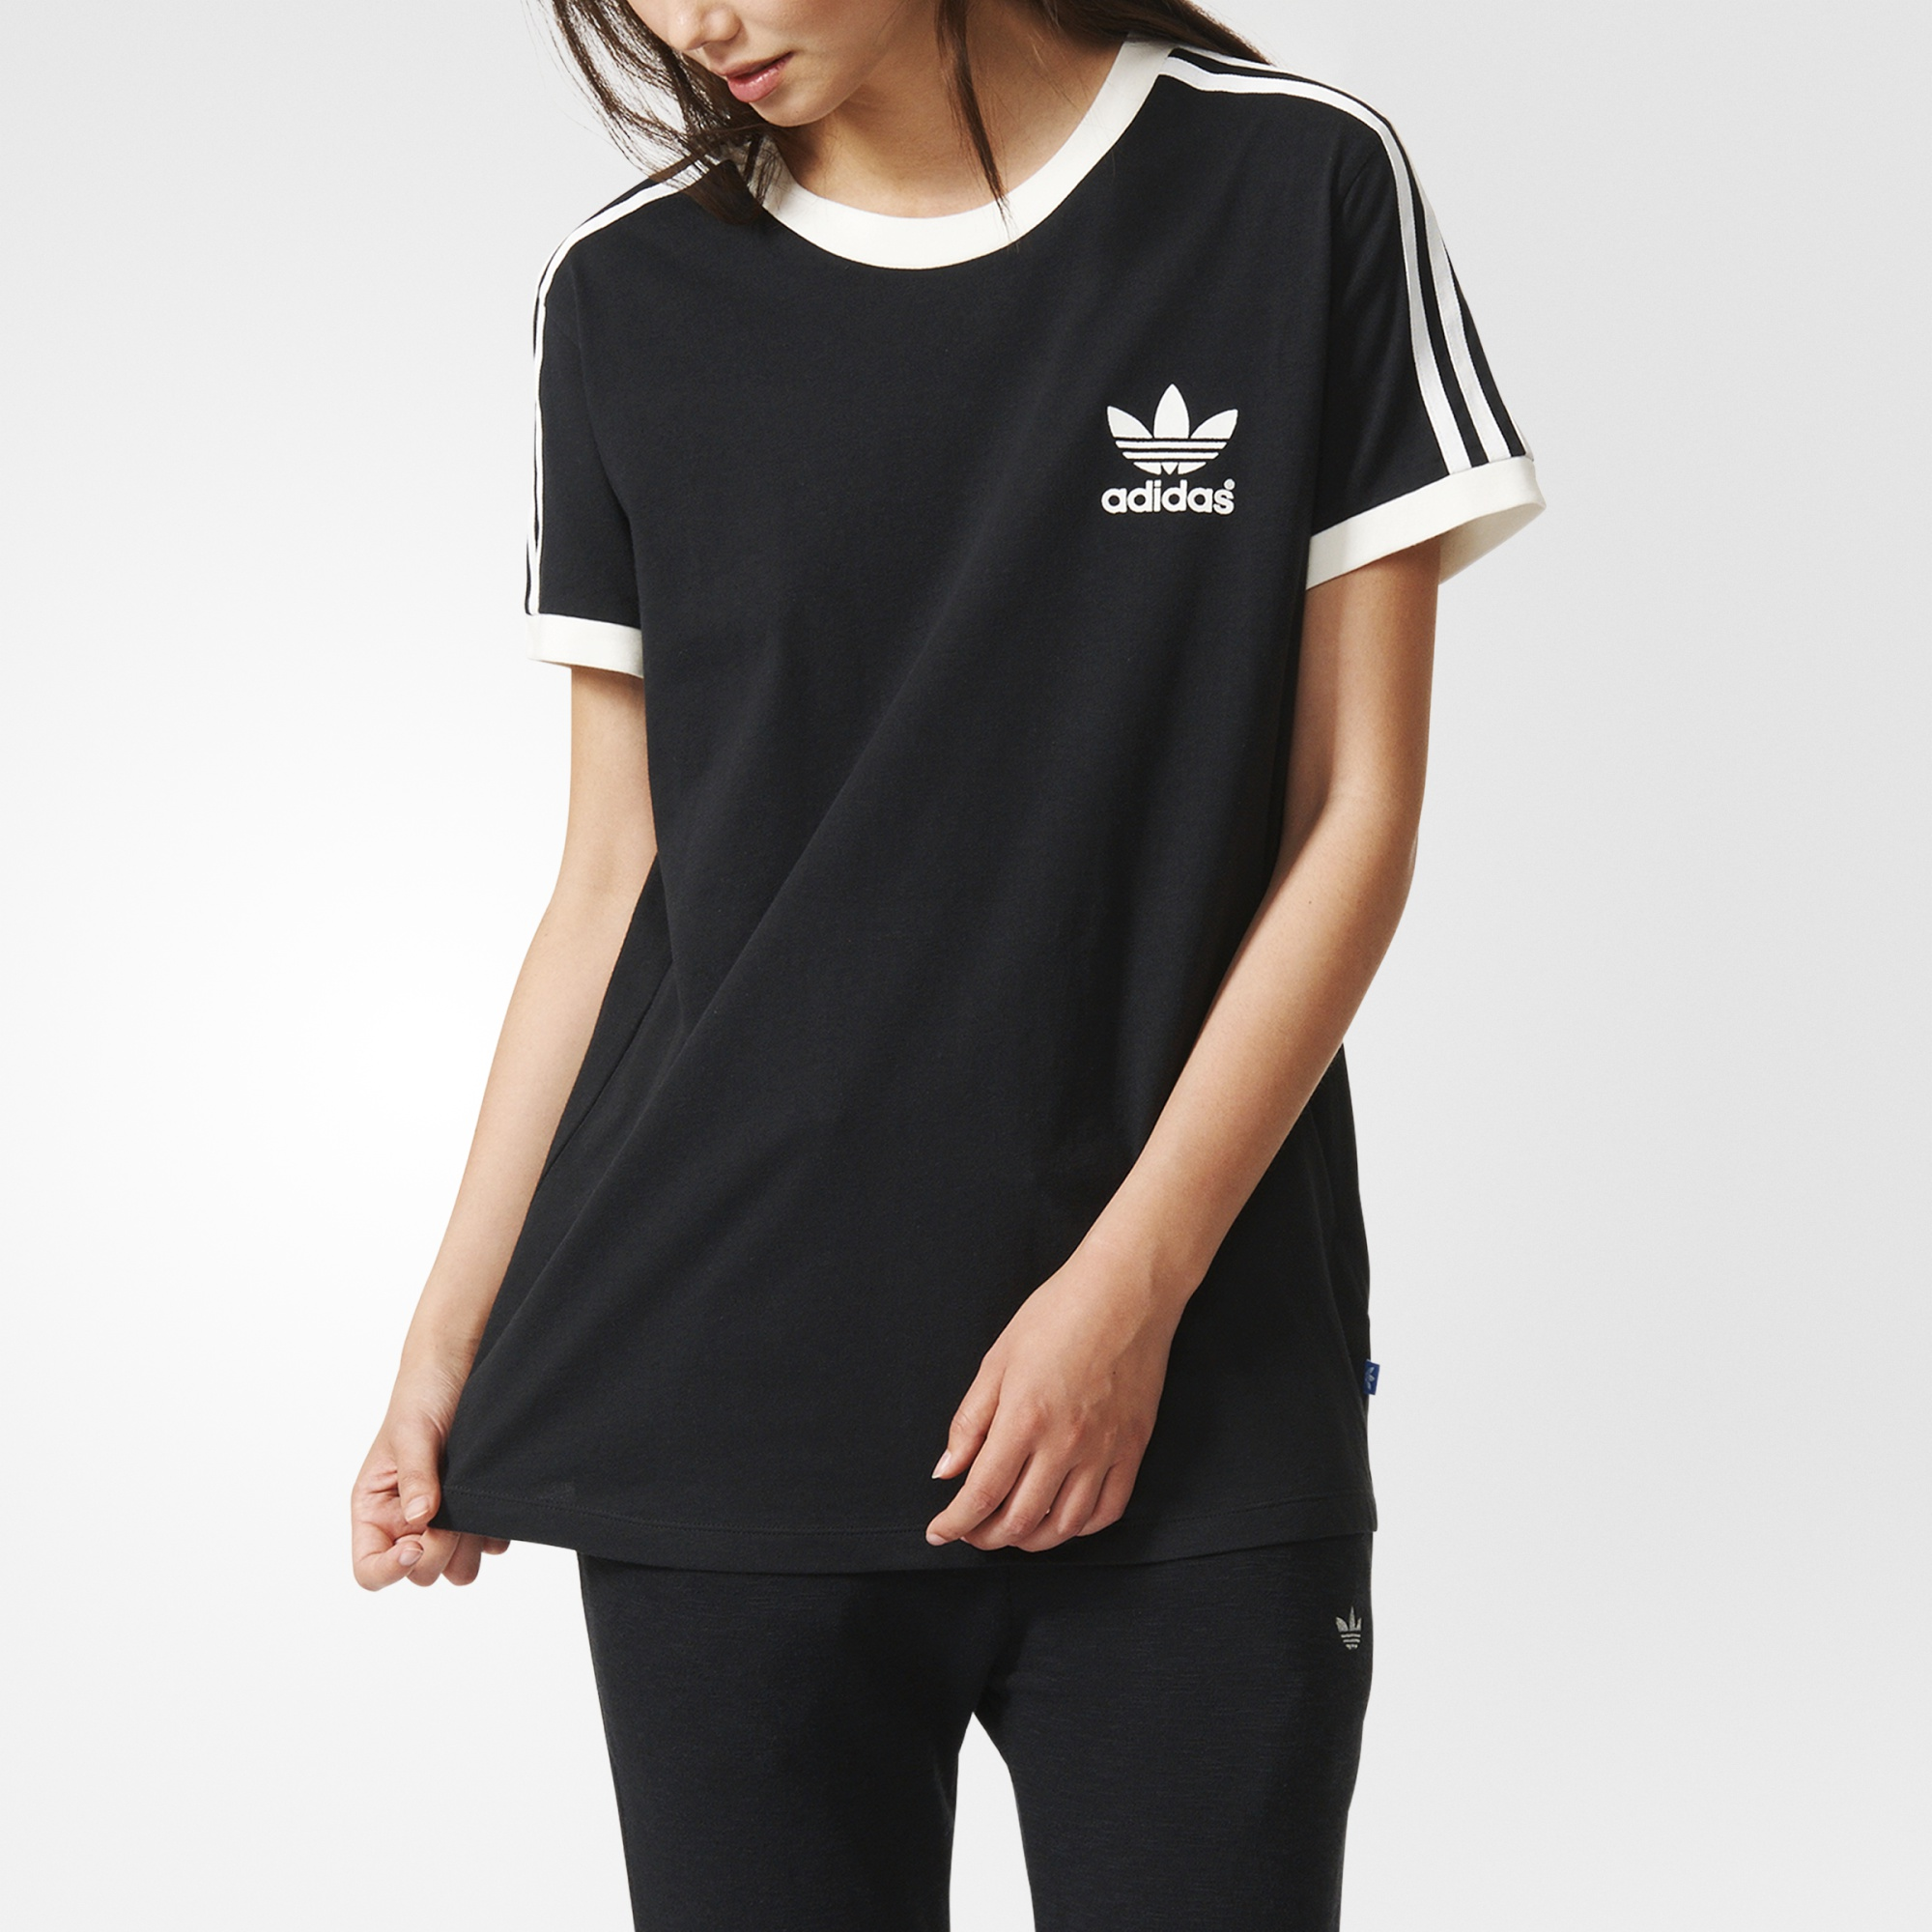 Black t shirt with white stripes - Adidas 3 Stripes Tee Black Adidas Uk